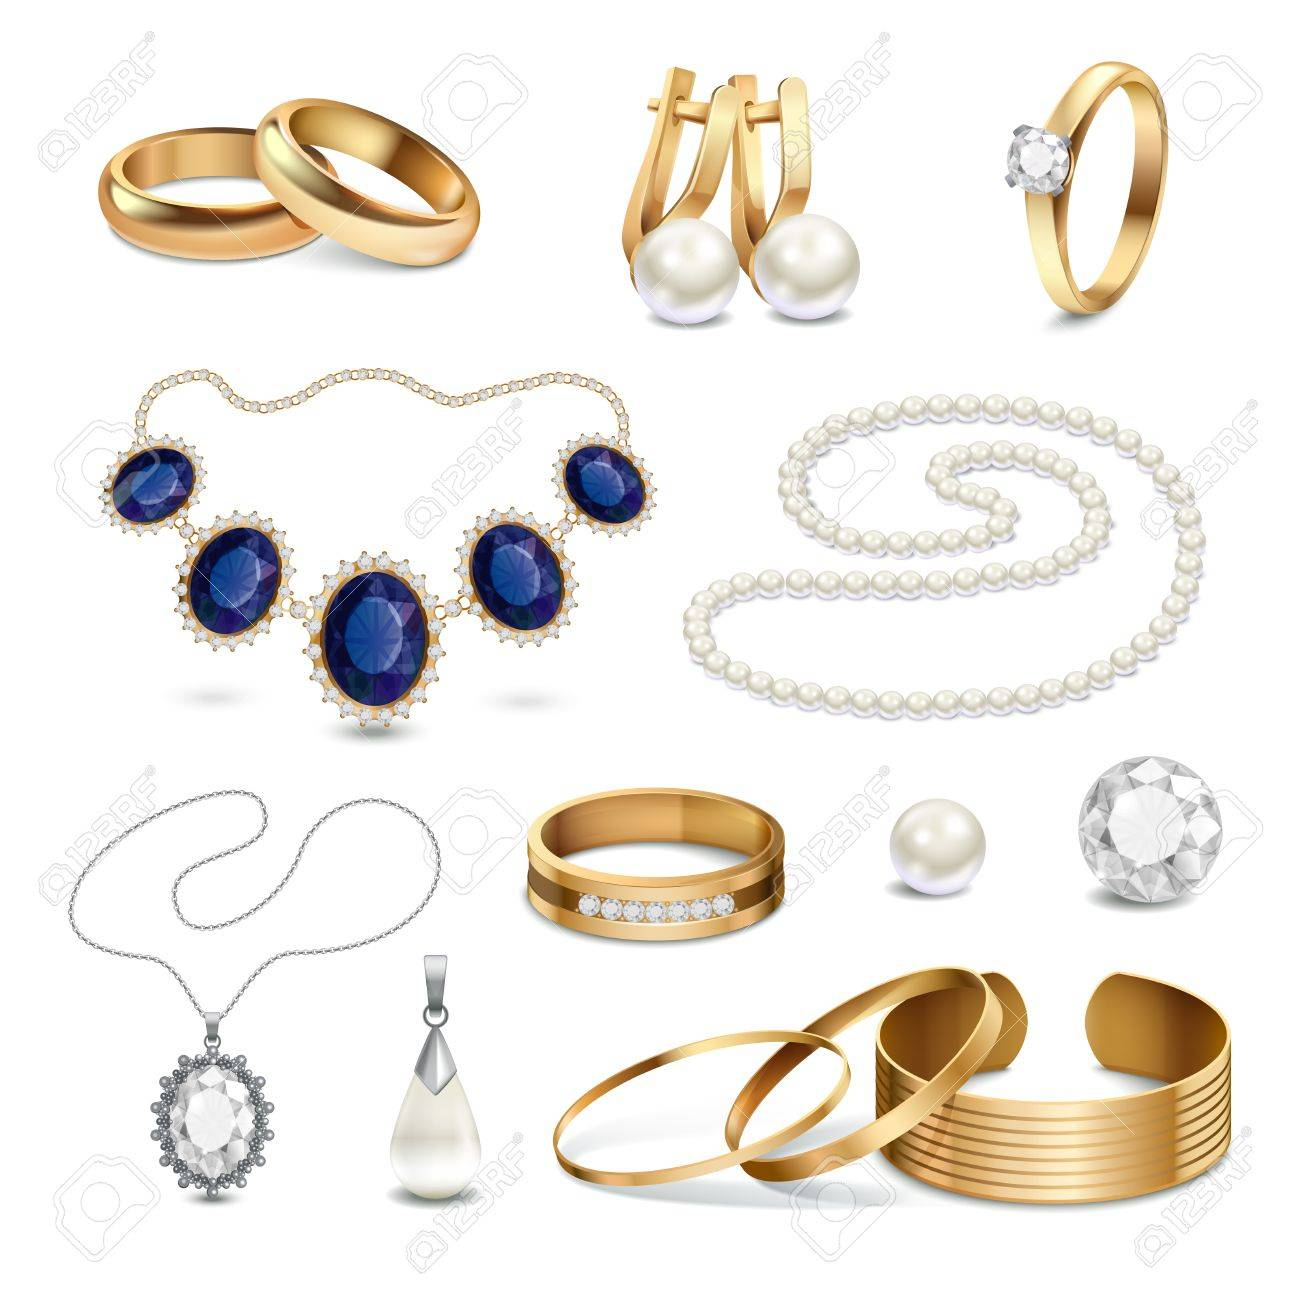 8c5416f37 Beautiful fashionable gold and silver jewelry and accessories realistic set  isolated on white background vector illustration